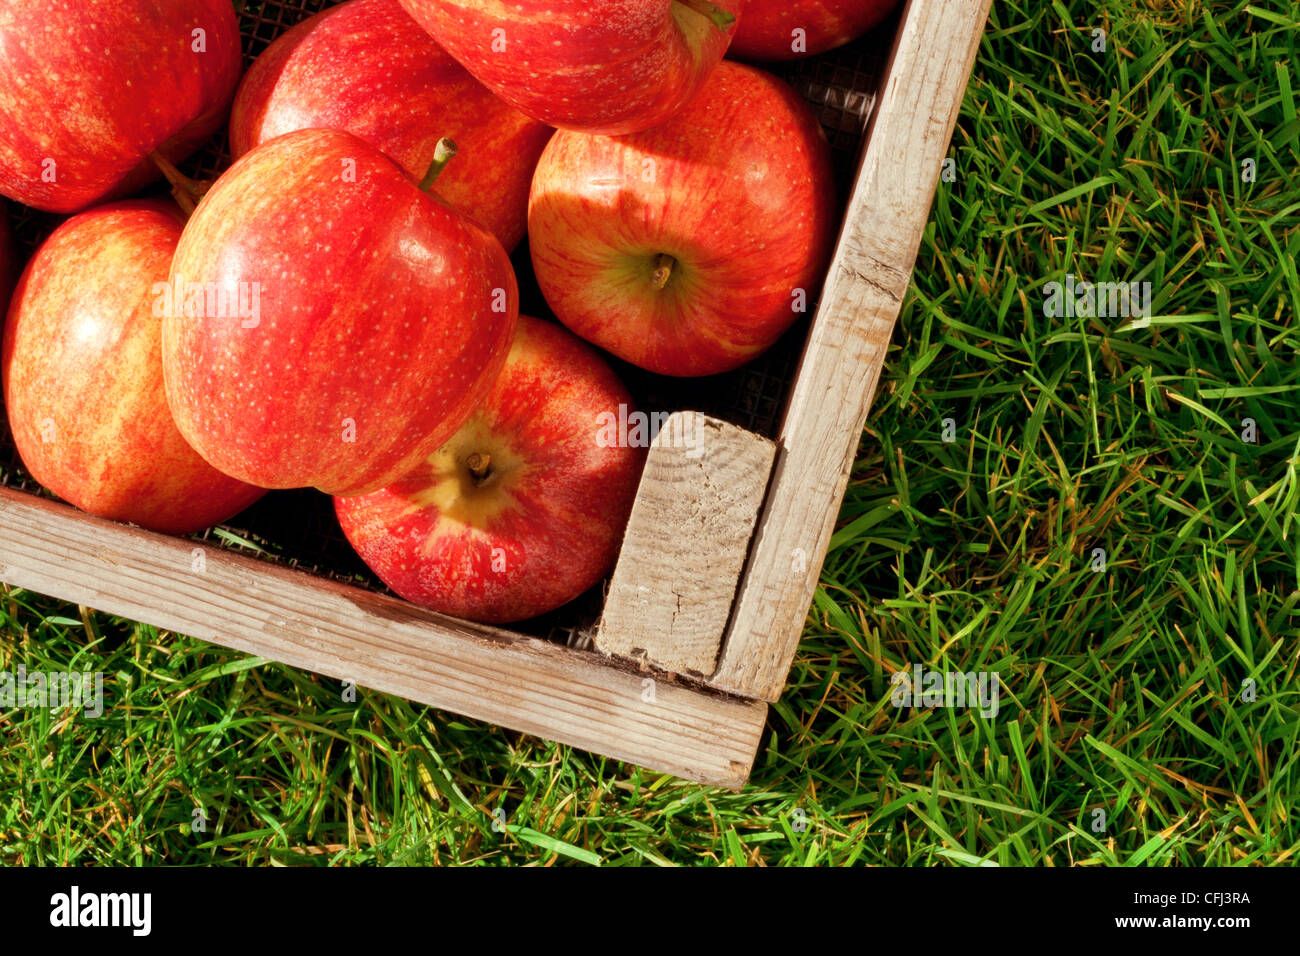 Still life photo of freshly picked red apples in a wooden crate on grass. - Stock Image